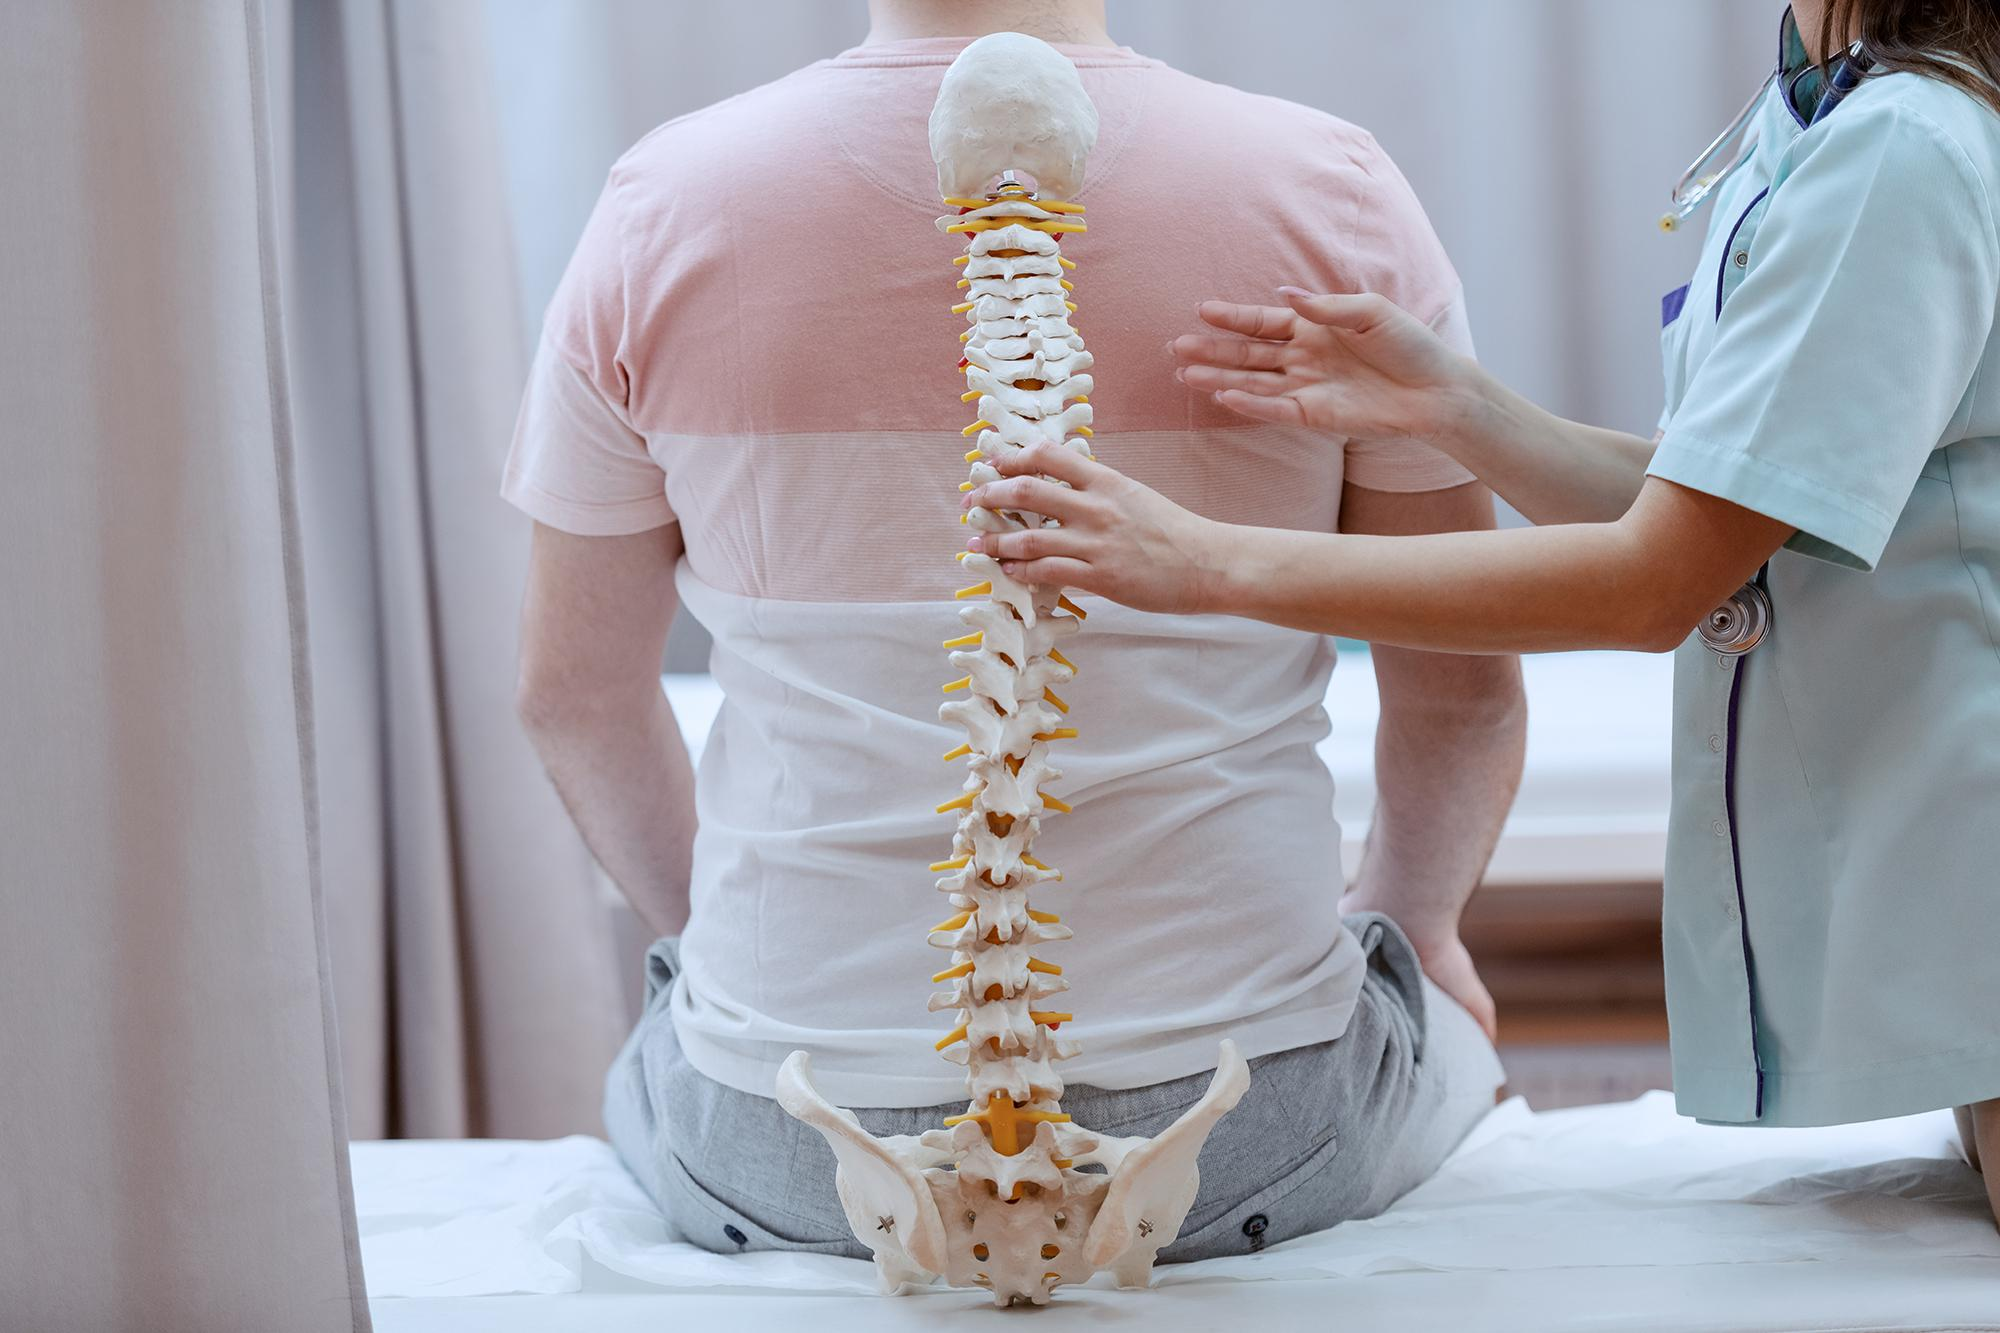 Find nucca chiropractic care in Phoenix AZ for spinal health.